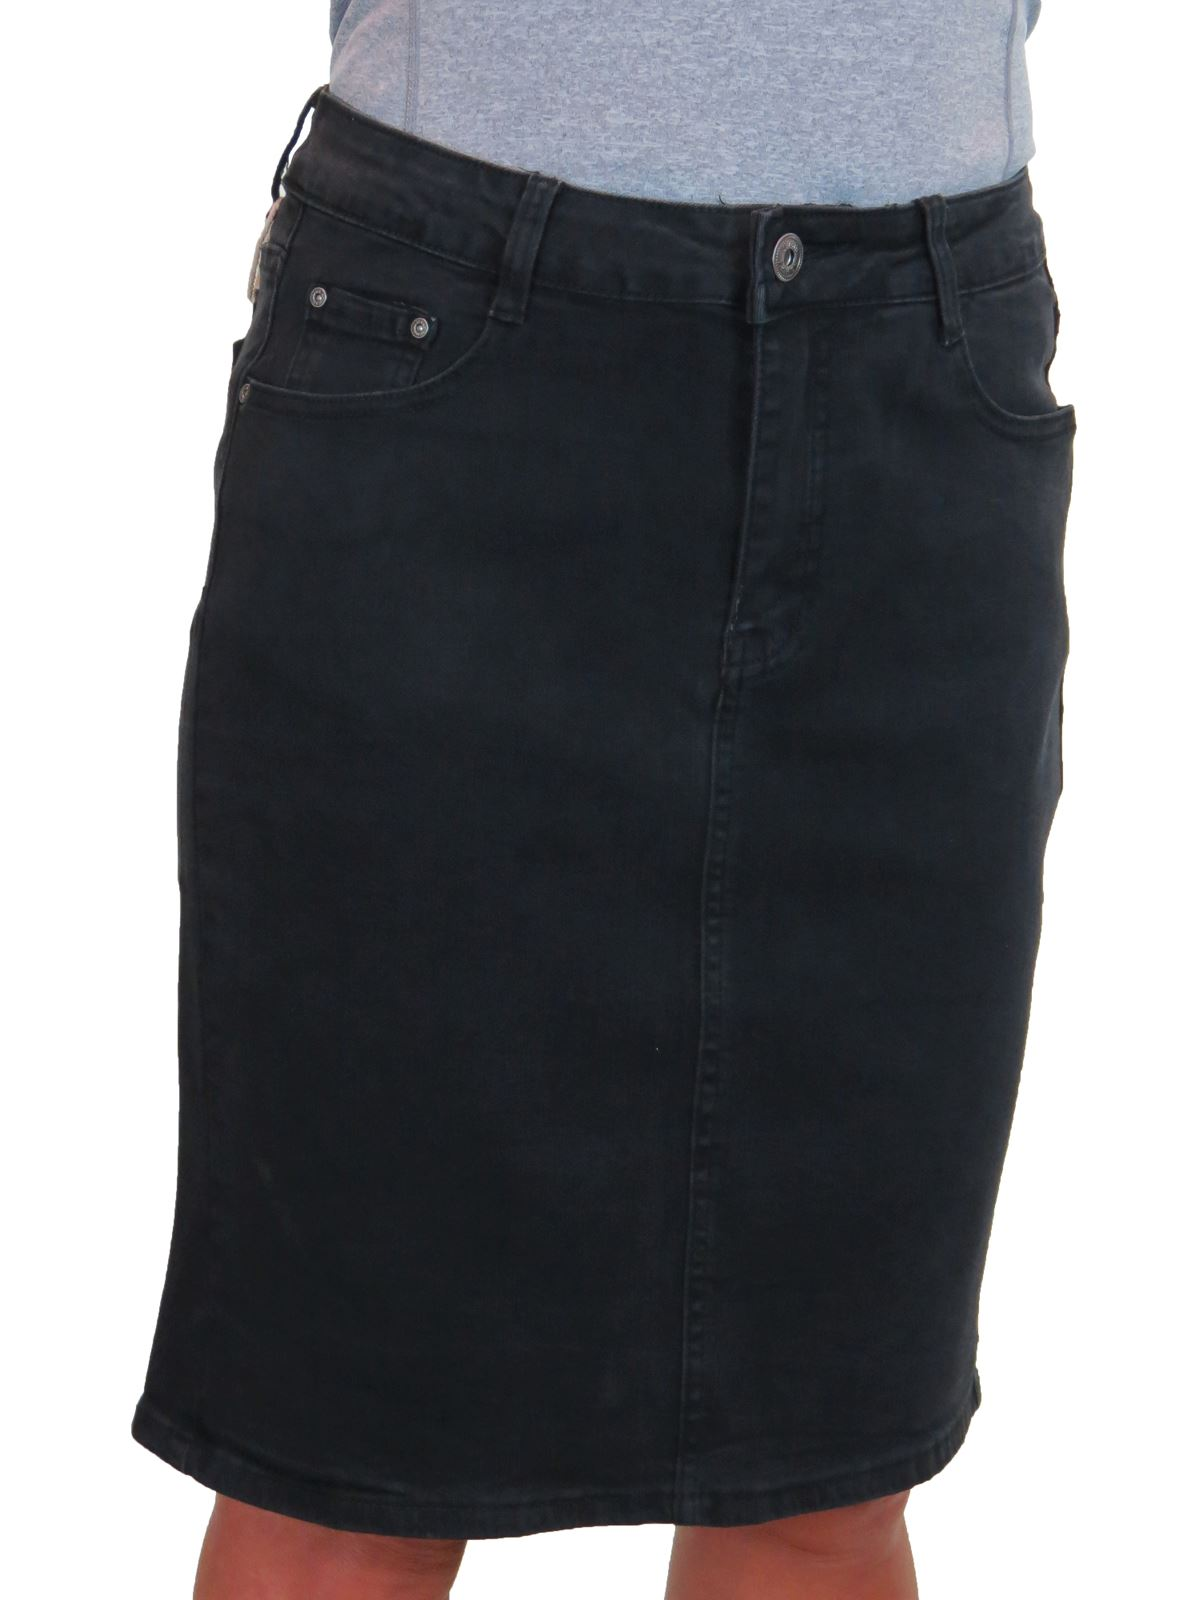 ICE-Knee-Length-Denim-Skirt-With-Great-Stretch-Jeans-Skirt-10-22 thumbnail 7